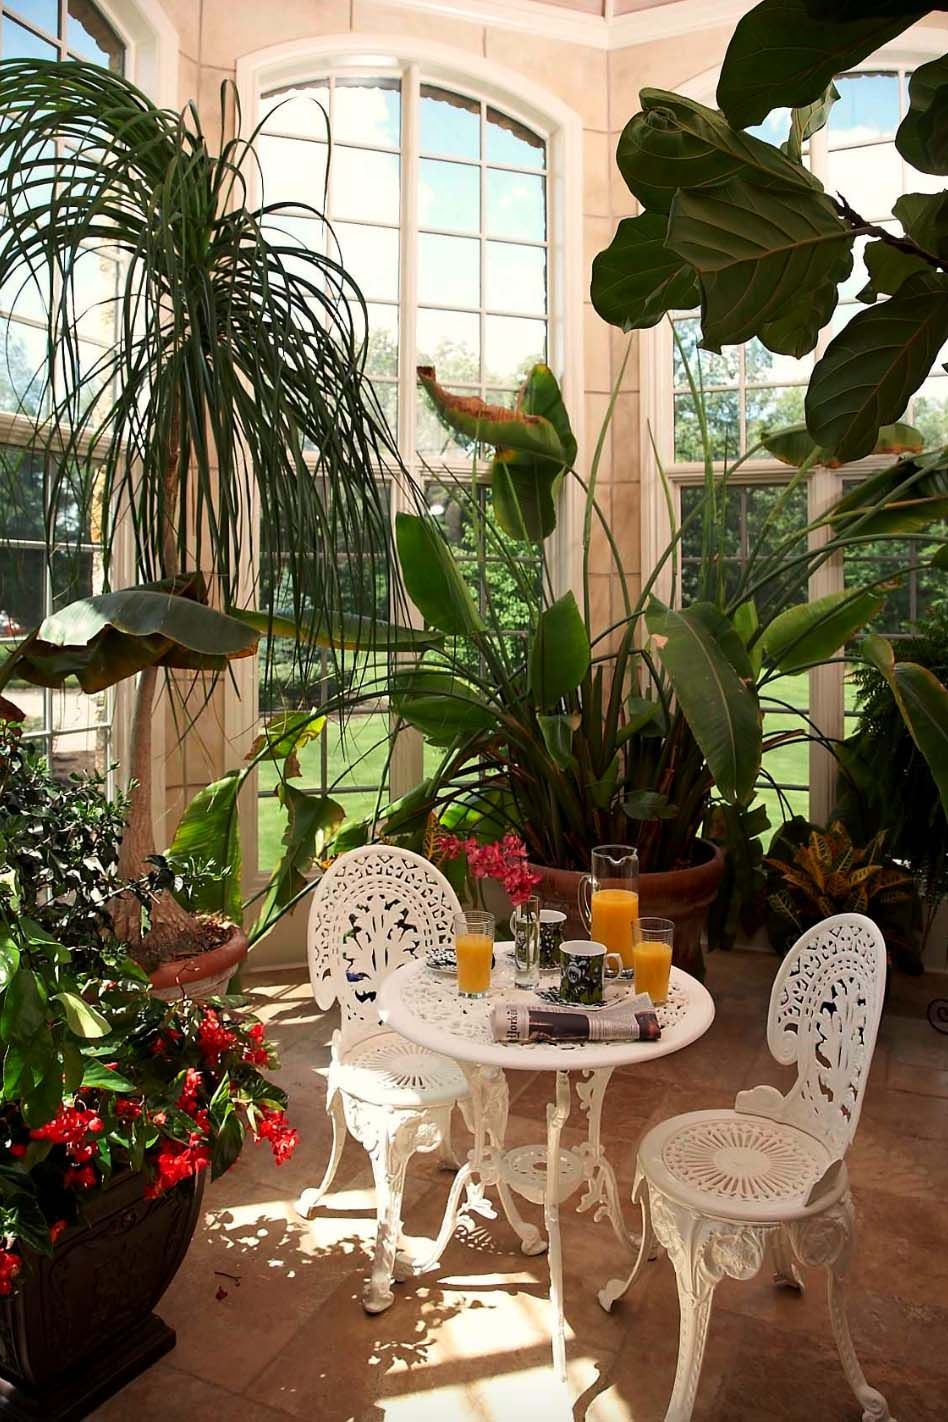 25+ Amazing conservatory greenhouse ideas for indoor-outdoor bliss on church interior plans, garage interior plans, cabin interior plans, greenhouse heaters solar, greenhouse room, greenhouse lighting, shed interior plans, greenhouse heat tubes, greenhouse furniture, greenhouse home, greenhouse work tables, greenhouse landscape, office interior plans, greenhouse ideas, hotel interior plans, greenhouse designs, greenhouse layout inside, greenhouse office space,